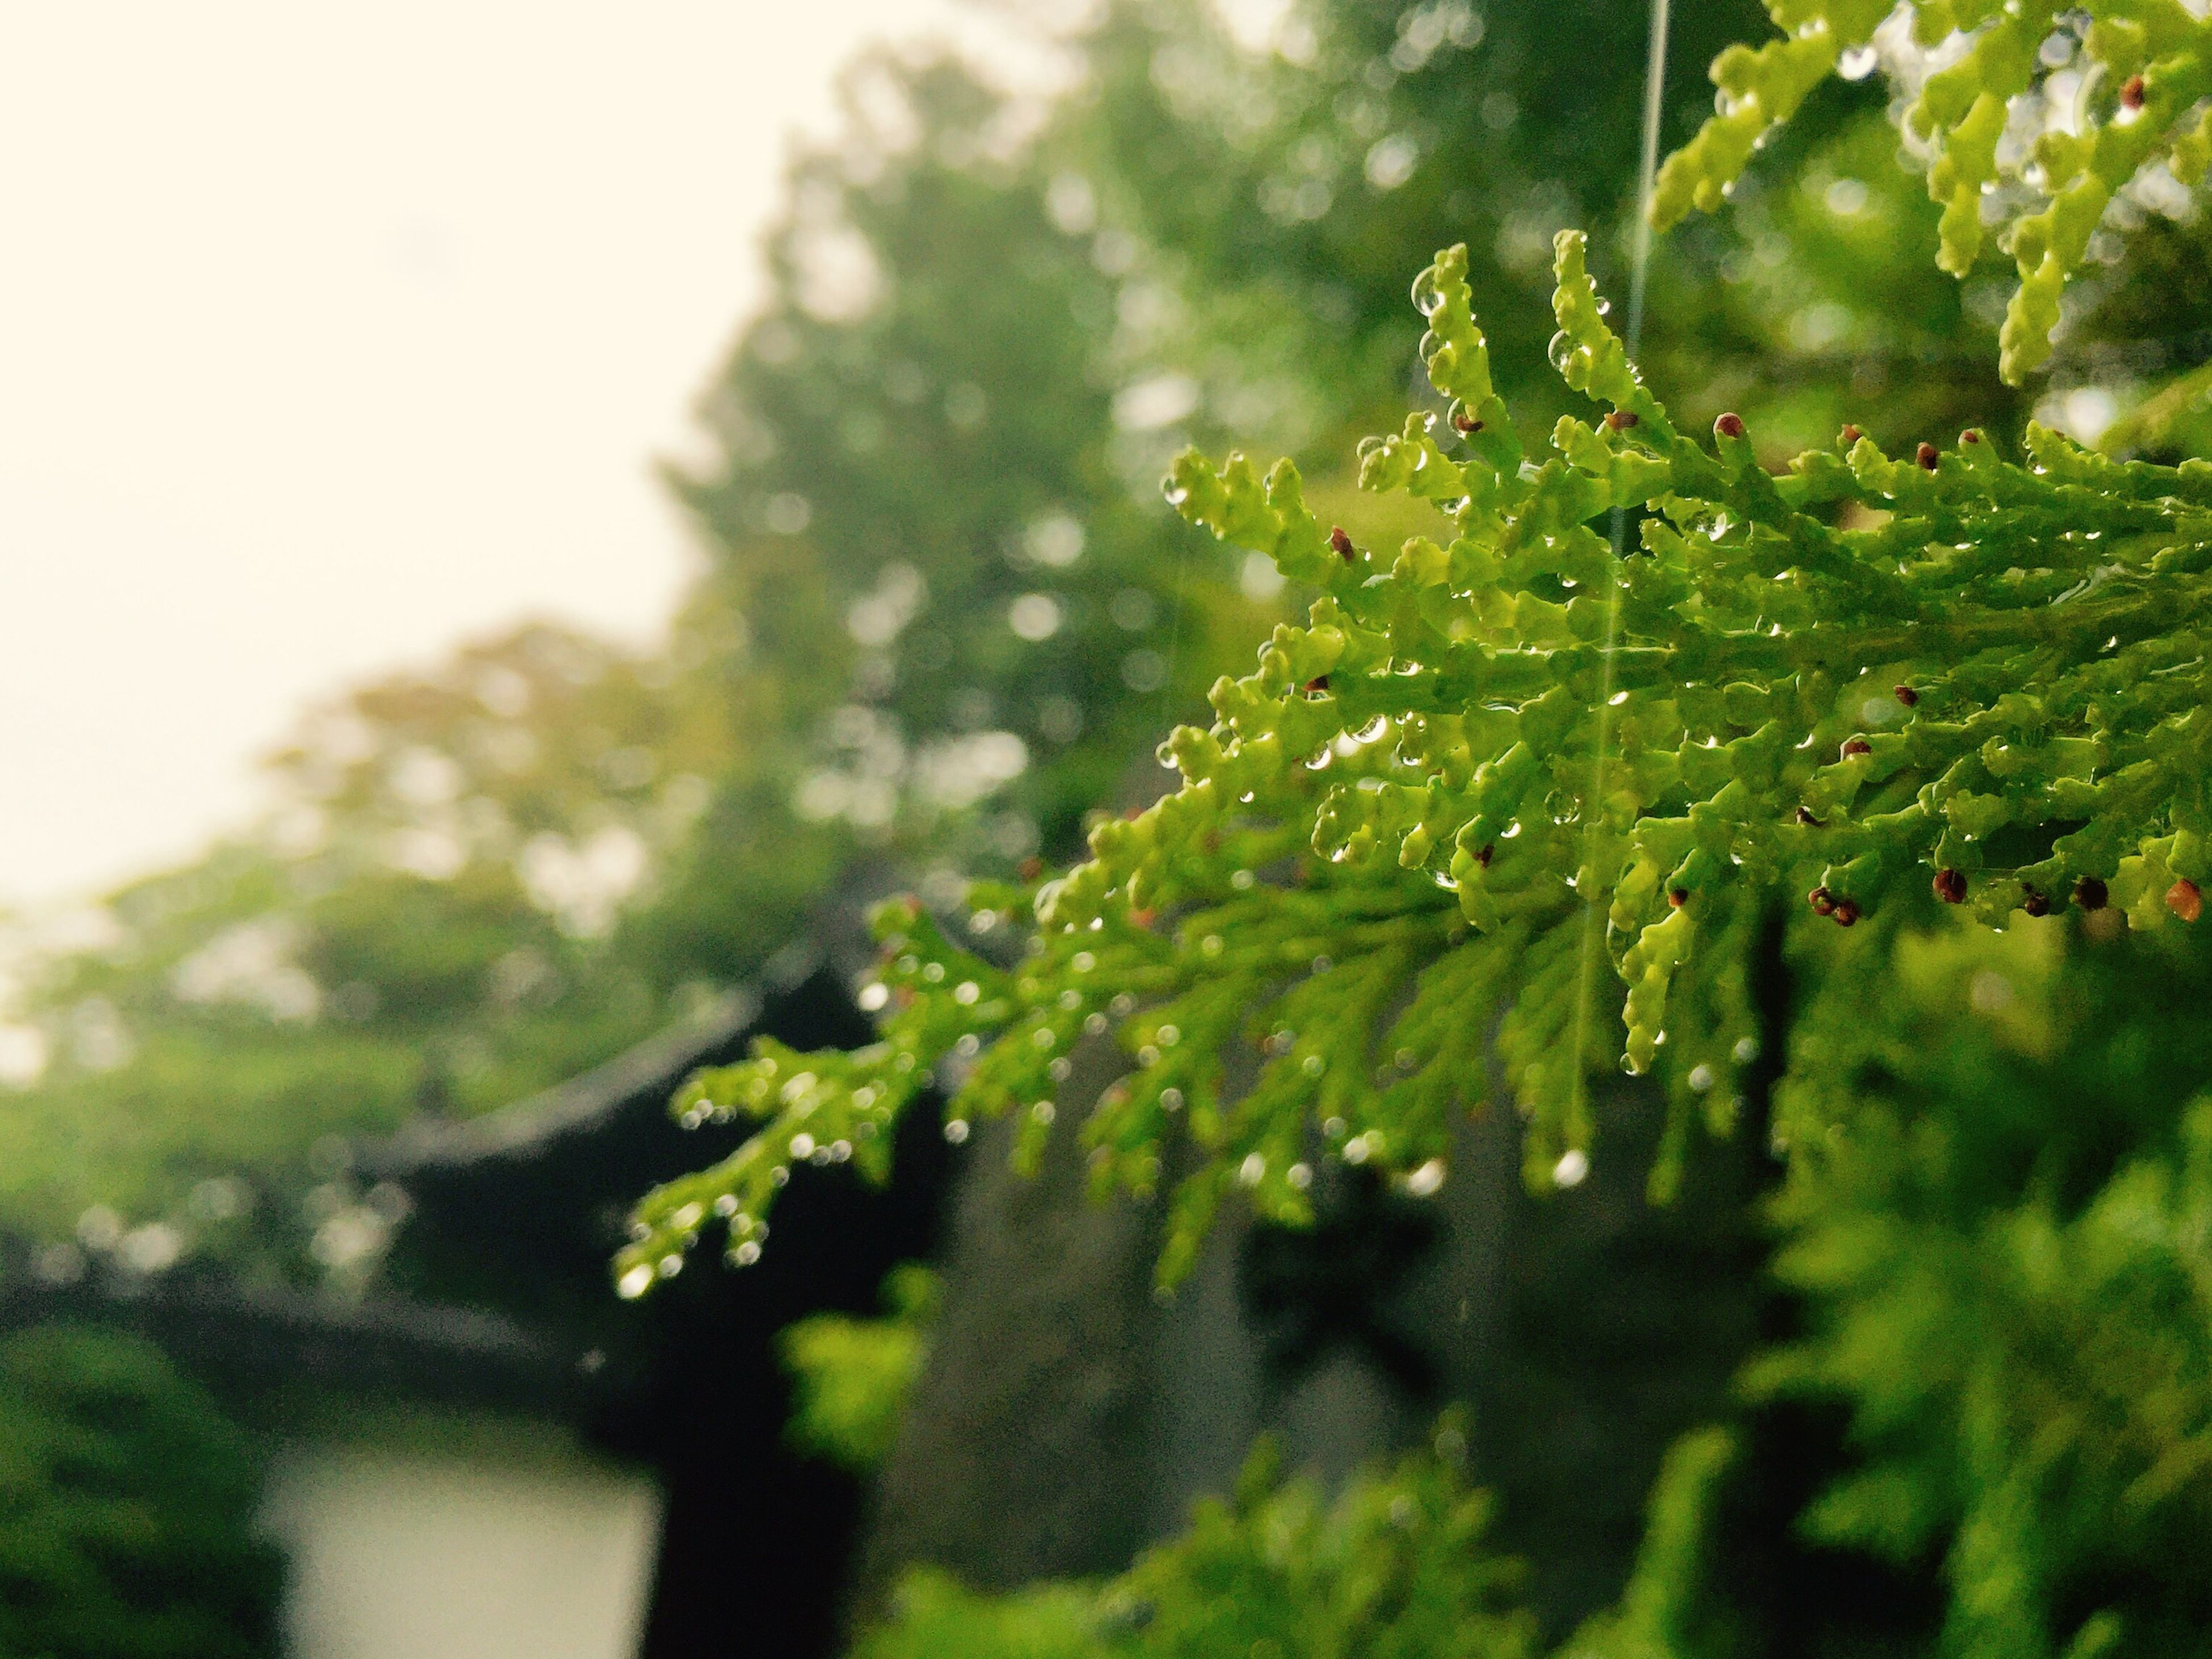 green color, growth, leaf, close-up, nature, focus on foreground, selective focus, plant, beauty in nature, tree, tranquility, freshness, branch, drop, green, day, wet, outdoors, no people, growing